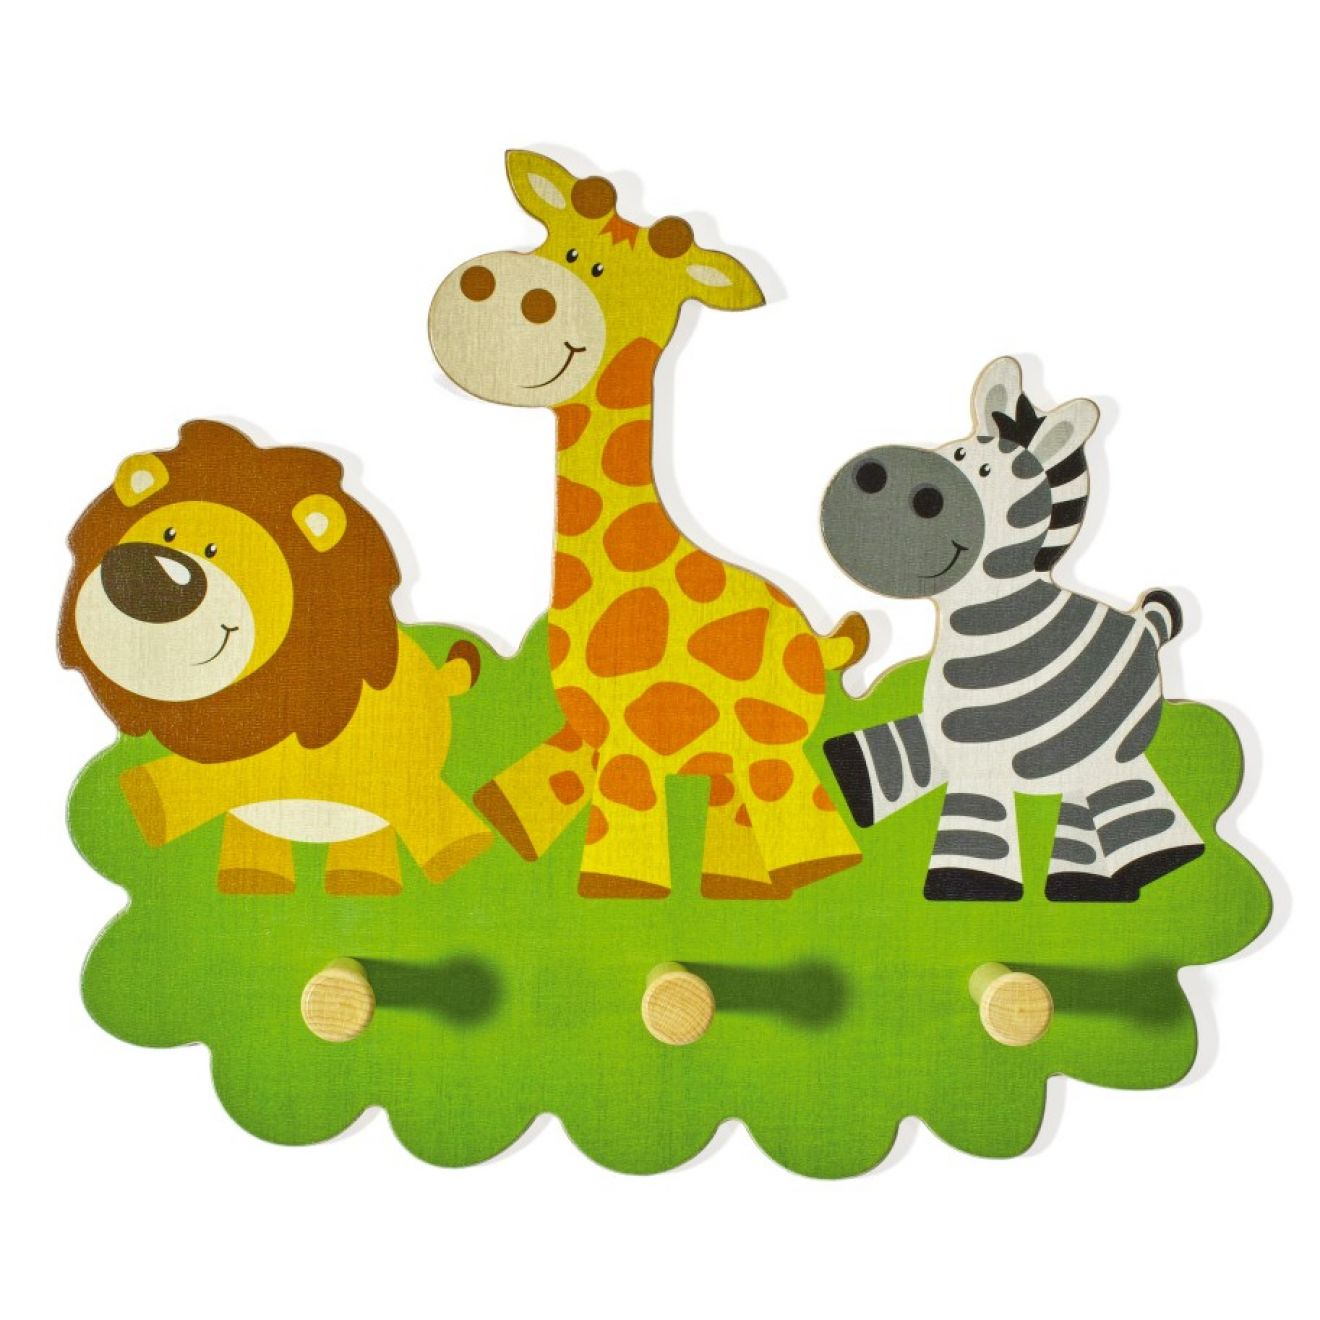 garderobe kinder tiere holz giraffe kindergarderobe 3 haken l we zebra wertprodukte. Black Bedroom Furniture Sets. Home Design Ideas